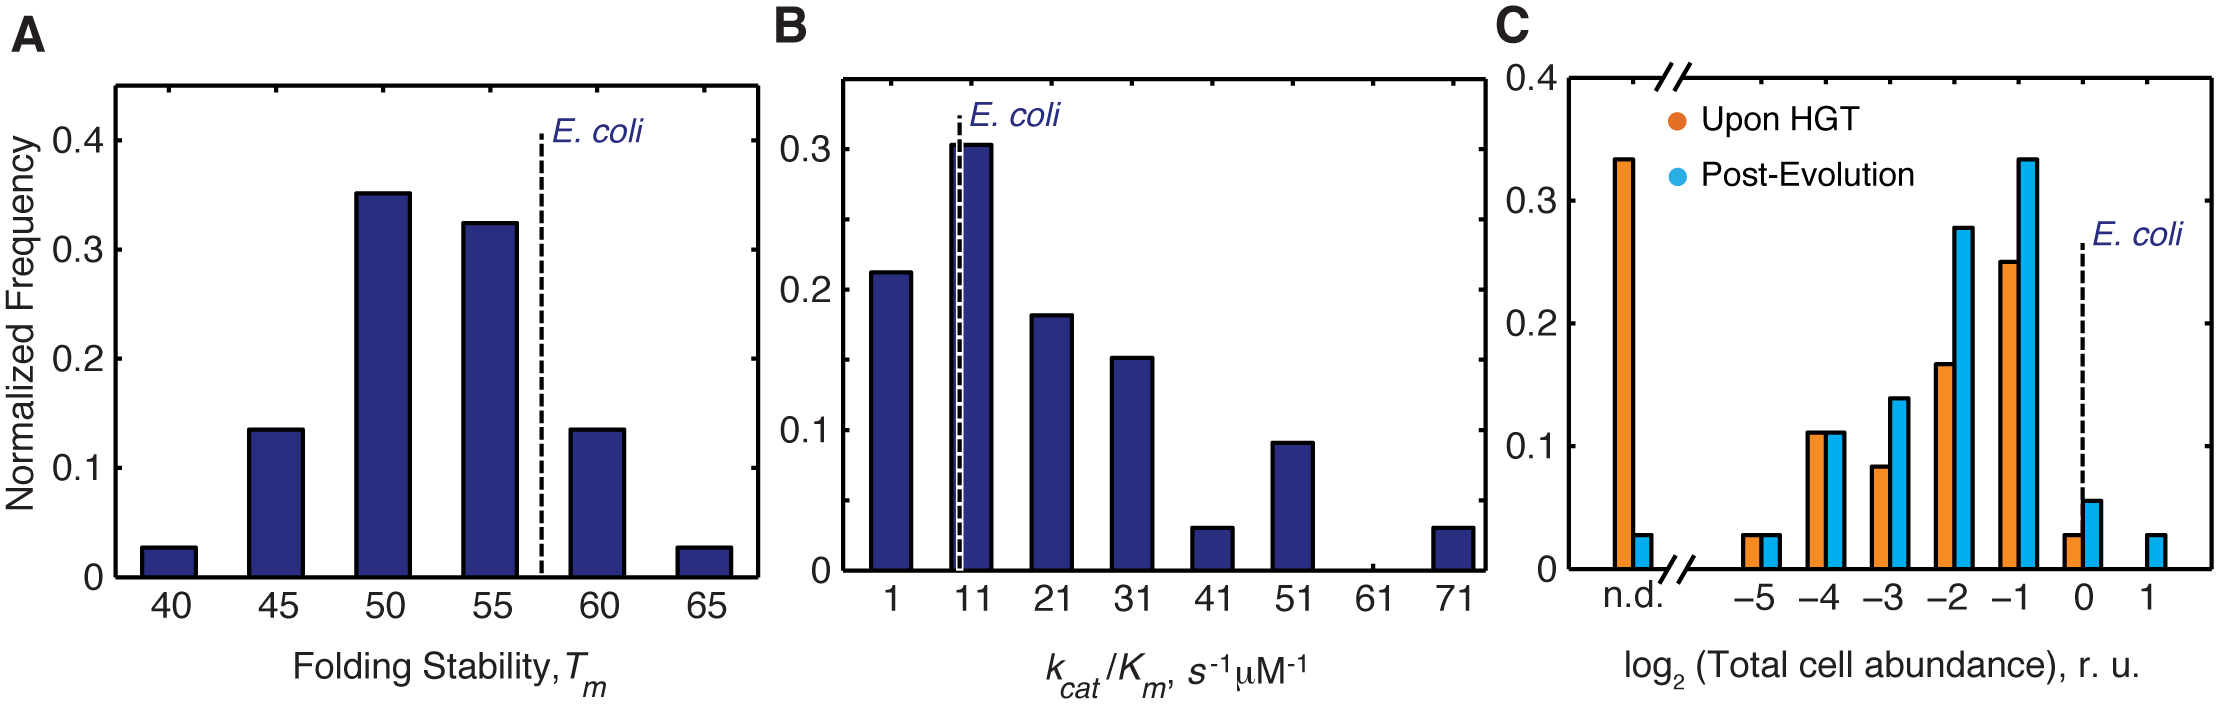 Distribution of molecular and cellular properties of orthologous DHFRs.